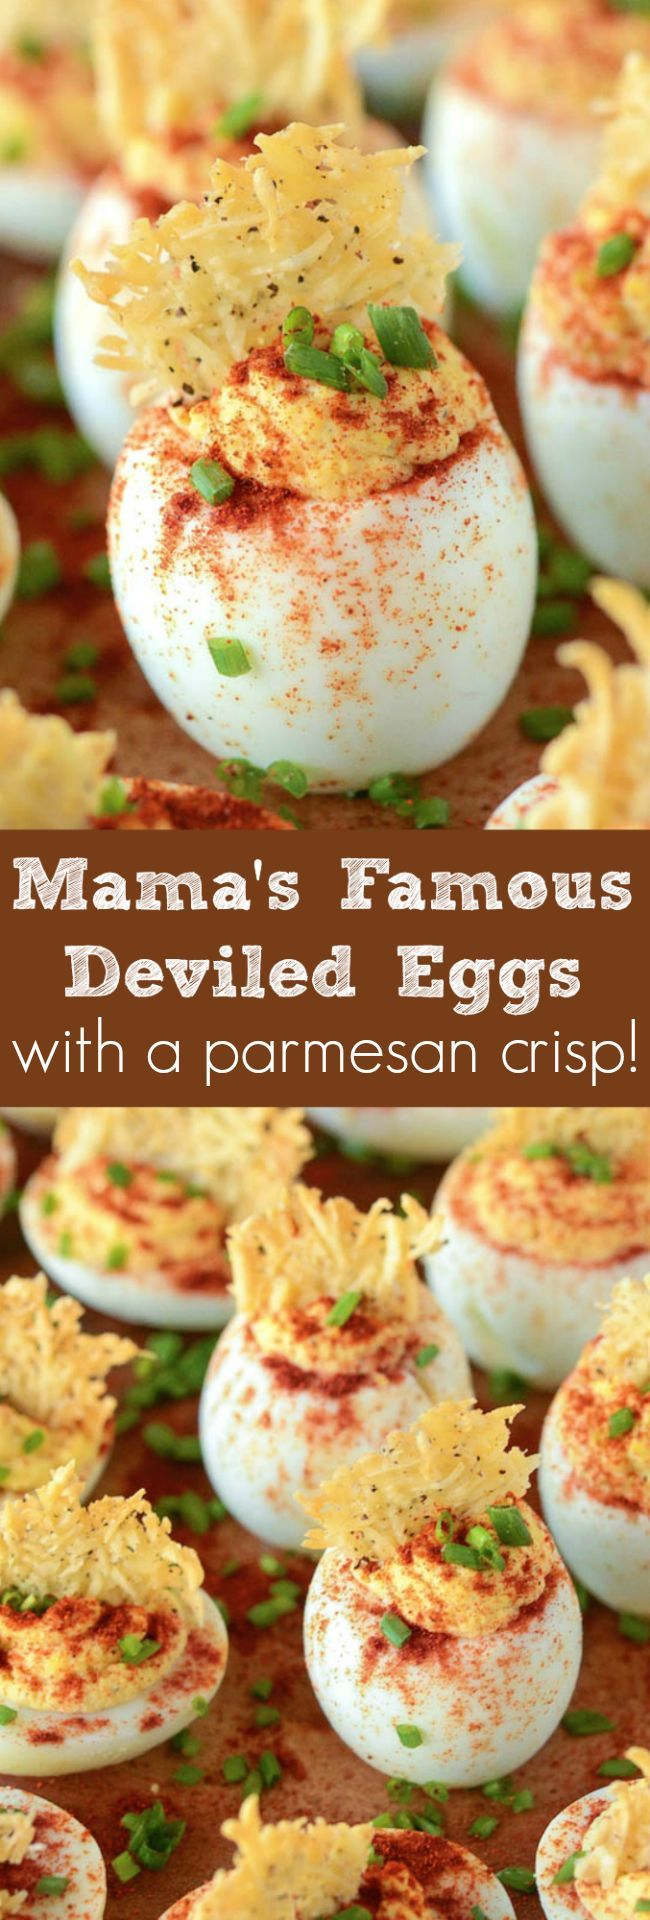 My Mama's famous deviled eggs with a cheesy parmesan crisp on top!